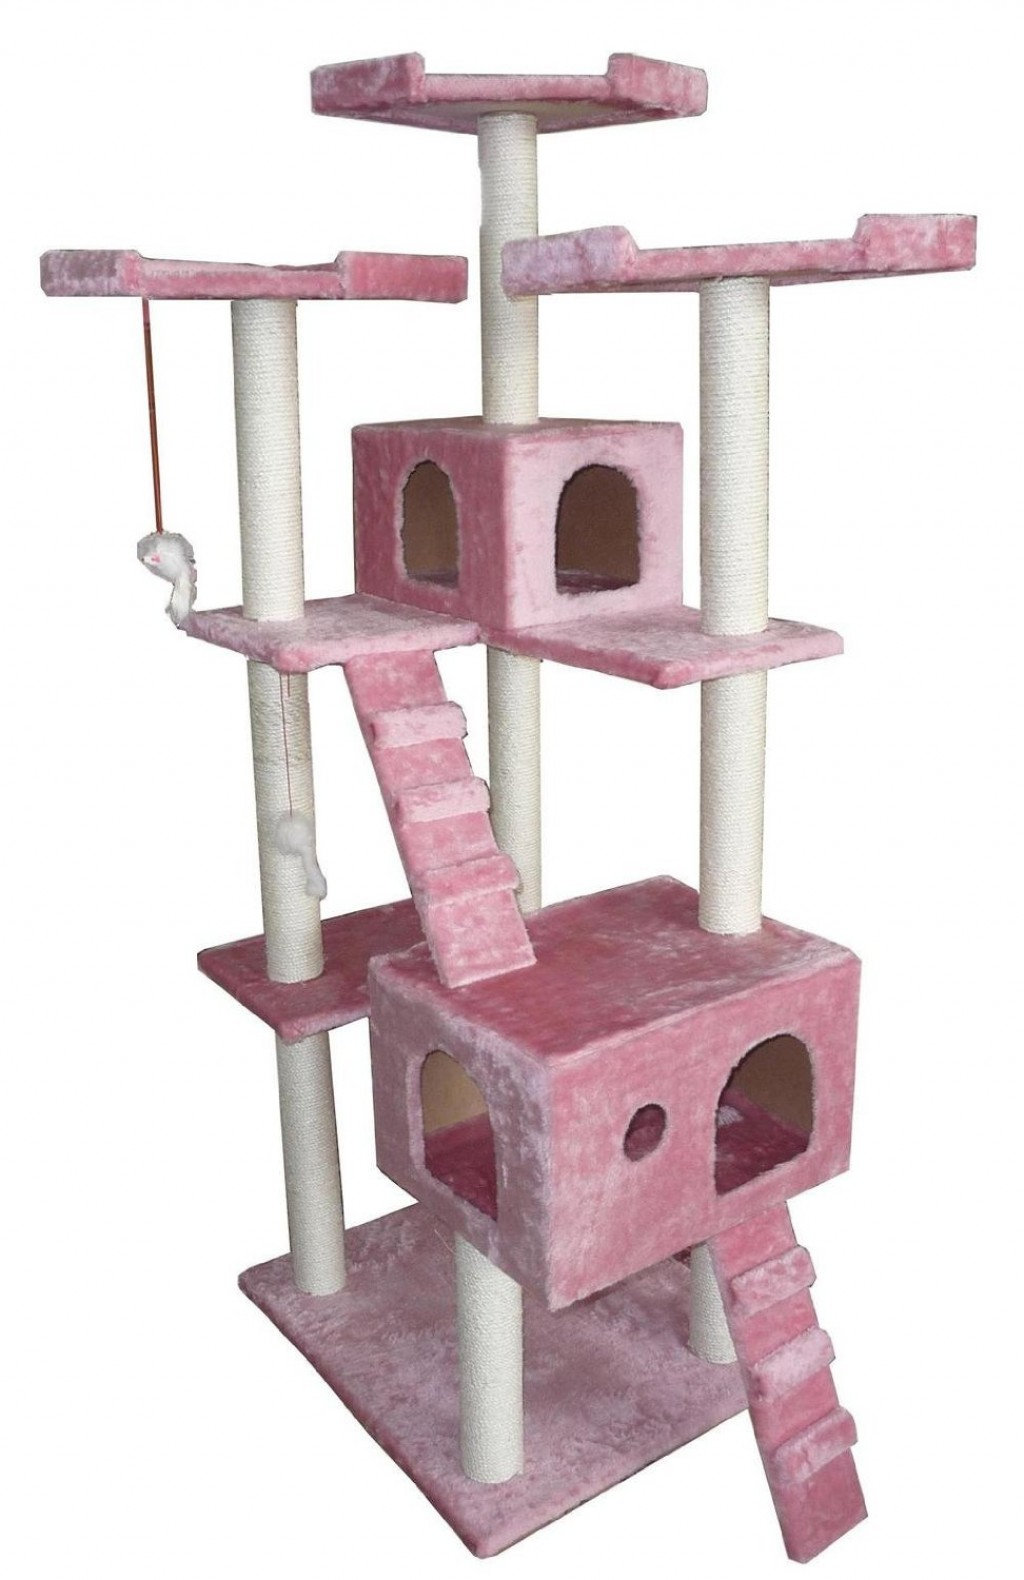 About Cats and Kittens: Most Popular Cat Trees, Condos ...